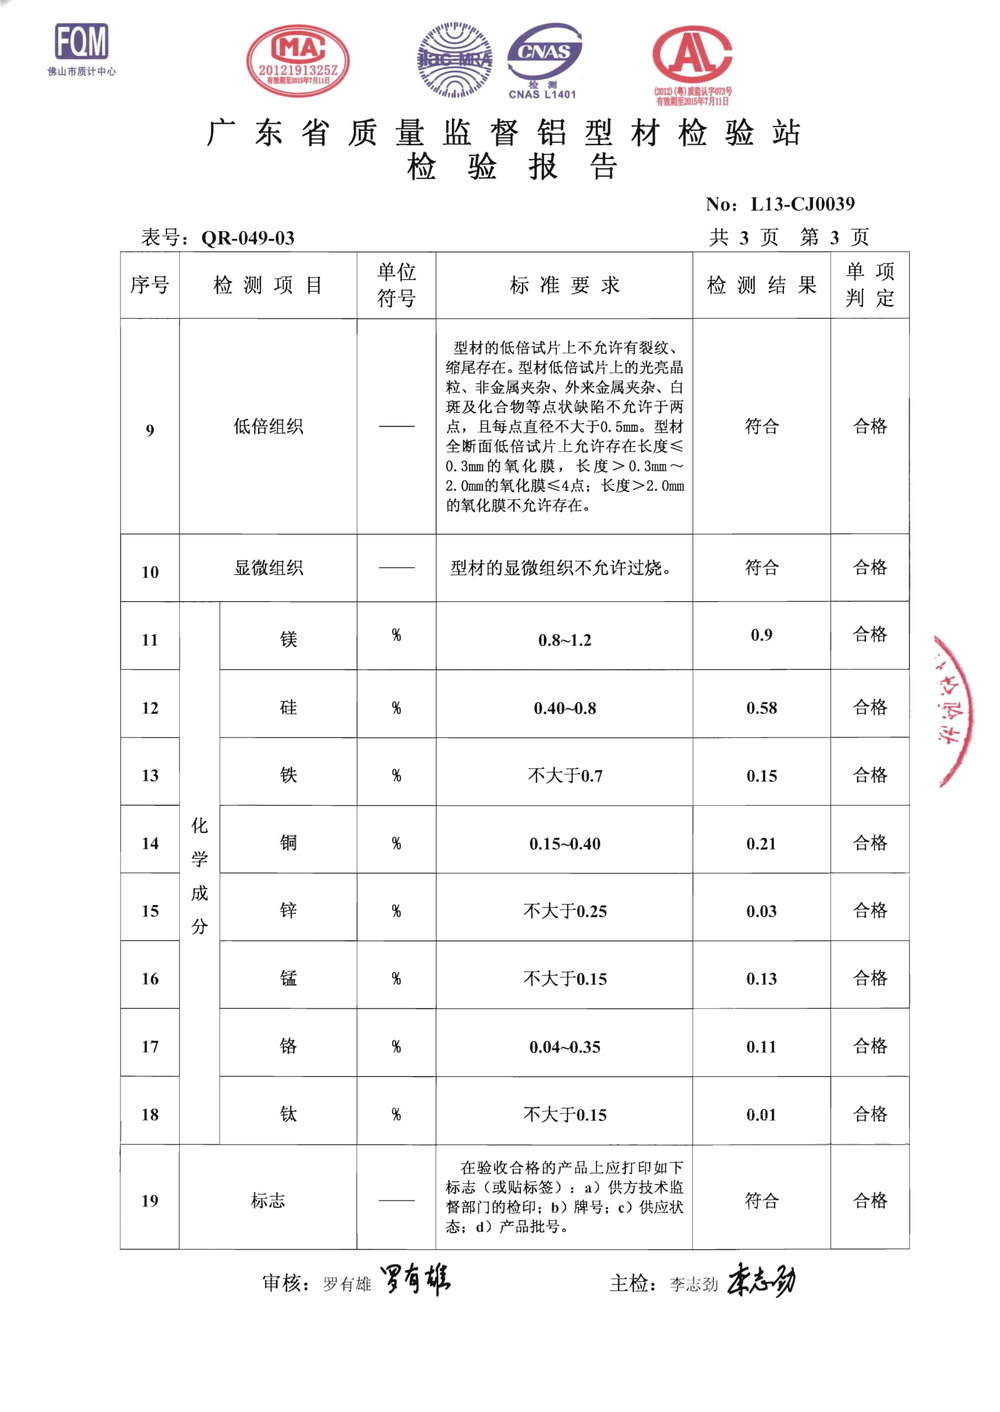 test report for aluminum materials-3.jpg